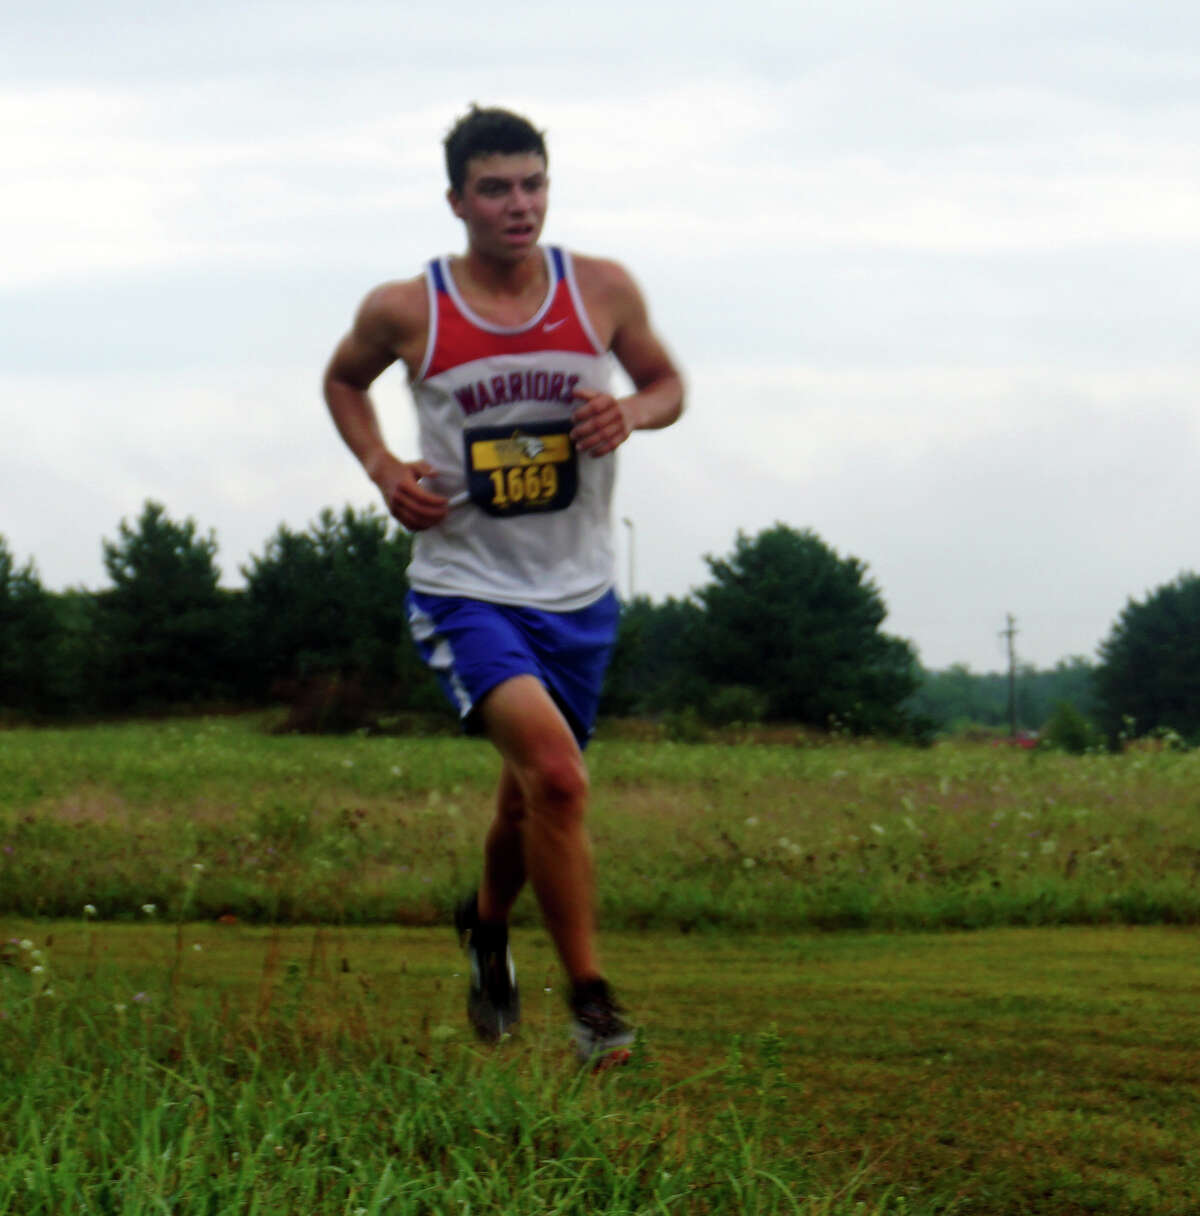 The Chippewa Hills cross-country squad hosted its first meet of the season on Wednesday, going up against St. Louis and Shepherd.